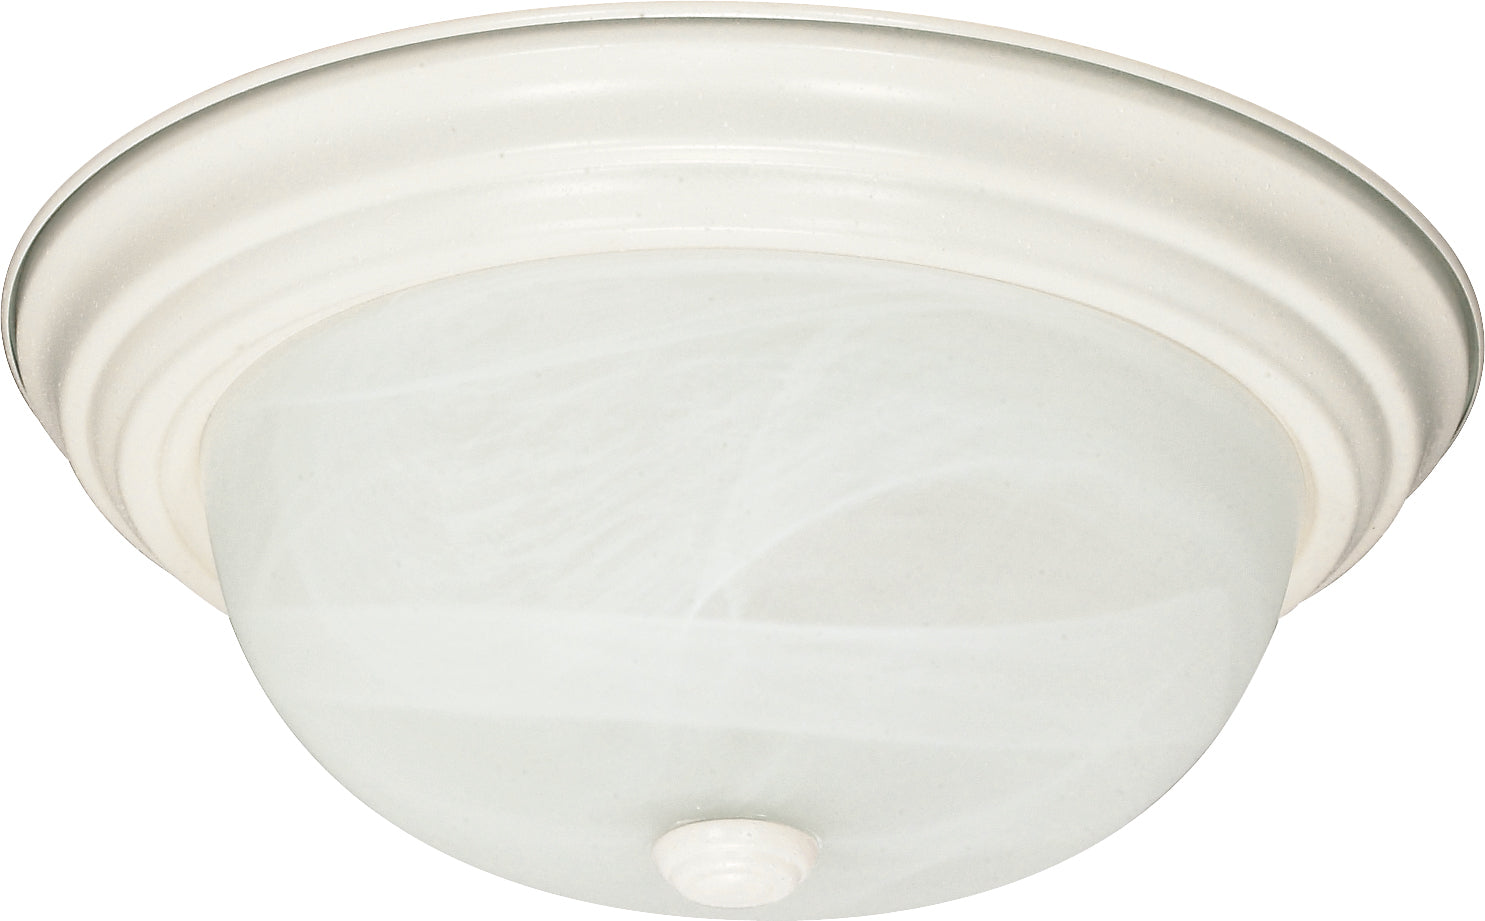 2-Light Flush Mounted Close-to-Ceiling Light Fixture in Textured White Finish